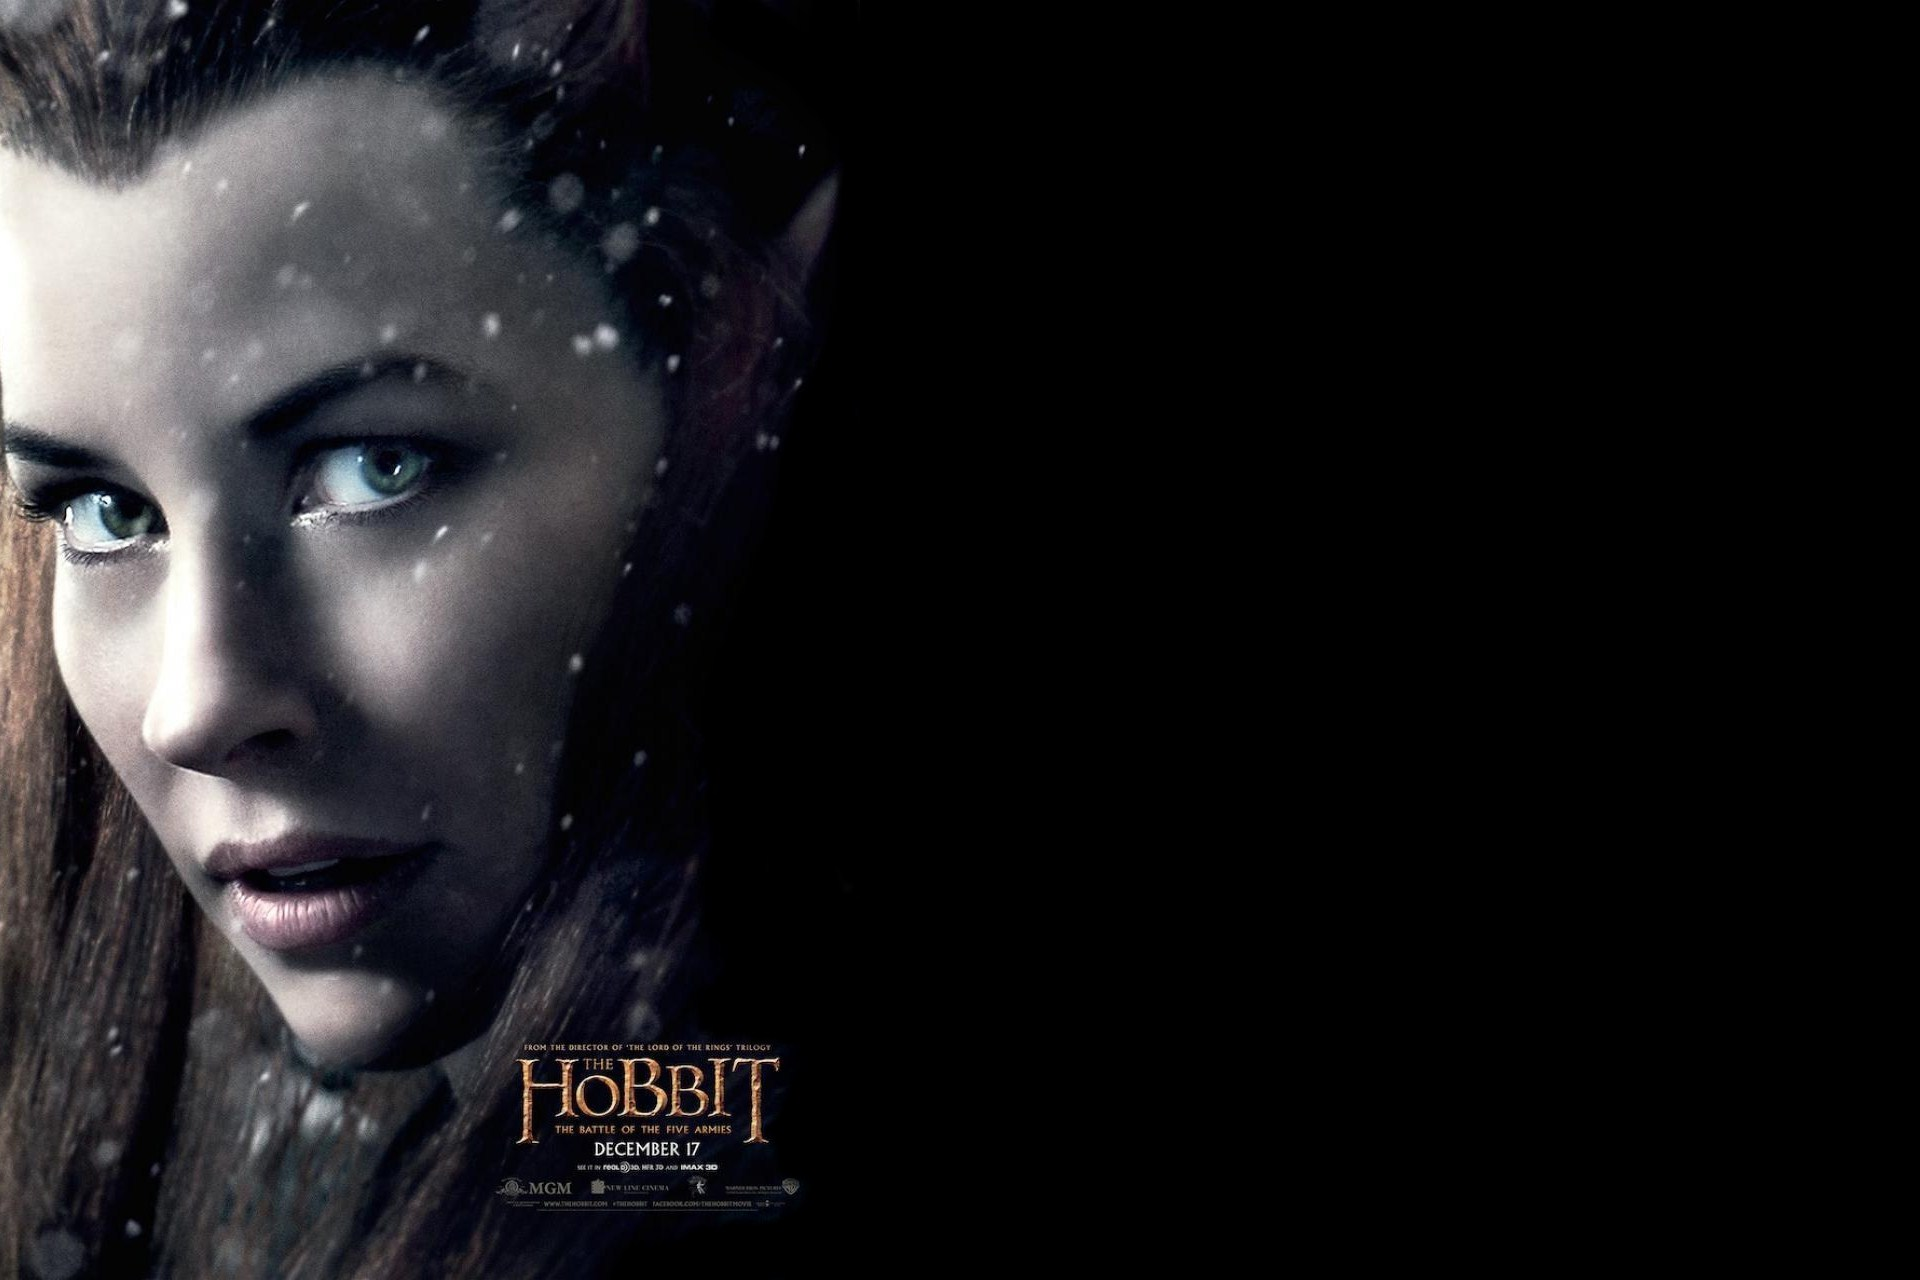 Evangeline Lilly In The Hobbit Battle of The Five Armies Wallpapers 1416